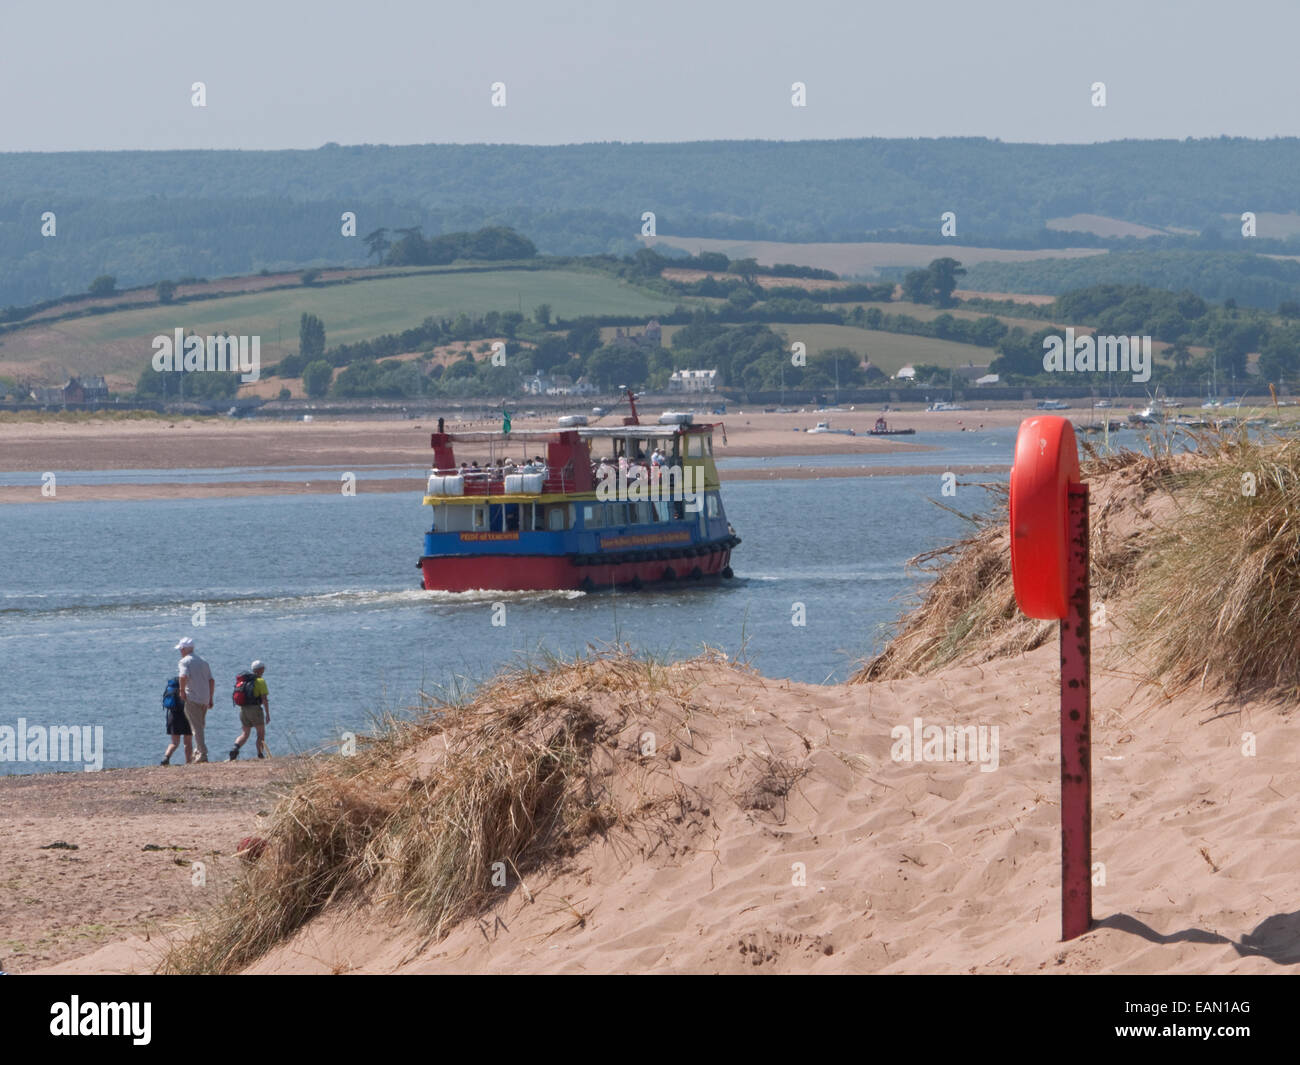 The River Exe Estuary with Pleasure Trip Boat, Exmouth, Devon, England Stock Photo